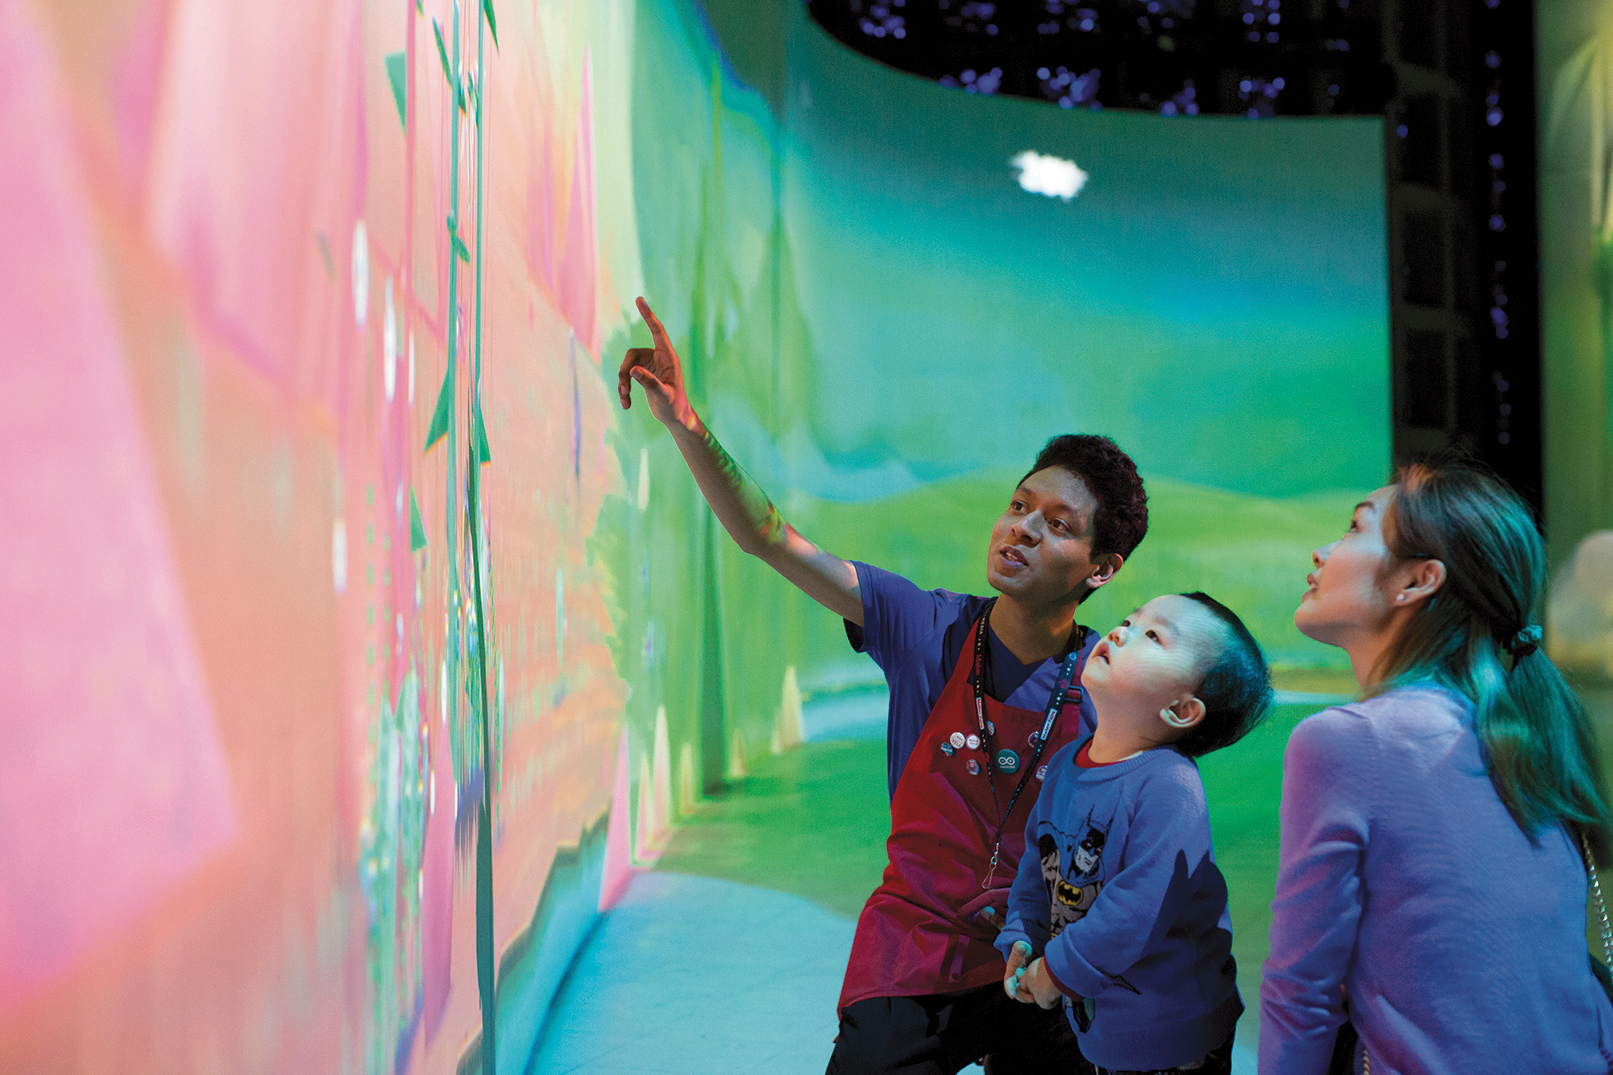 A docent points out a feature of a colorful mural to a child.